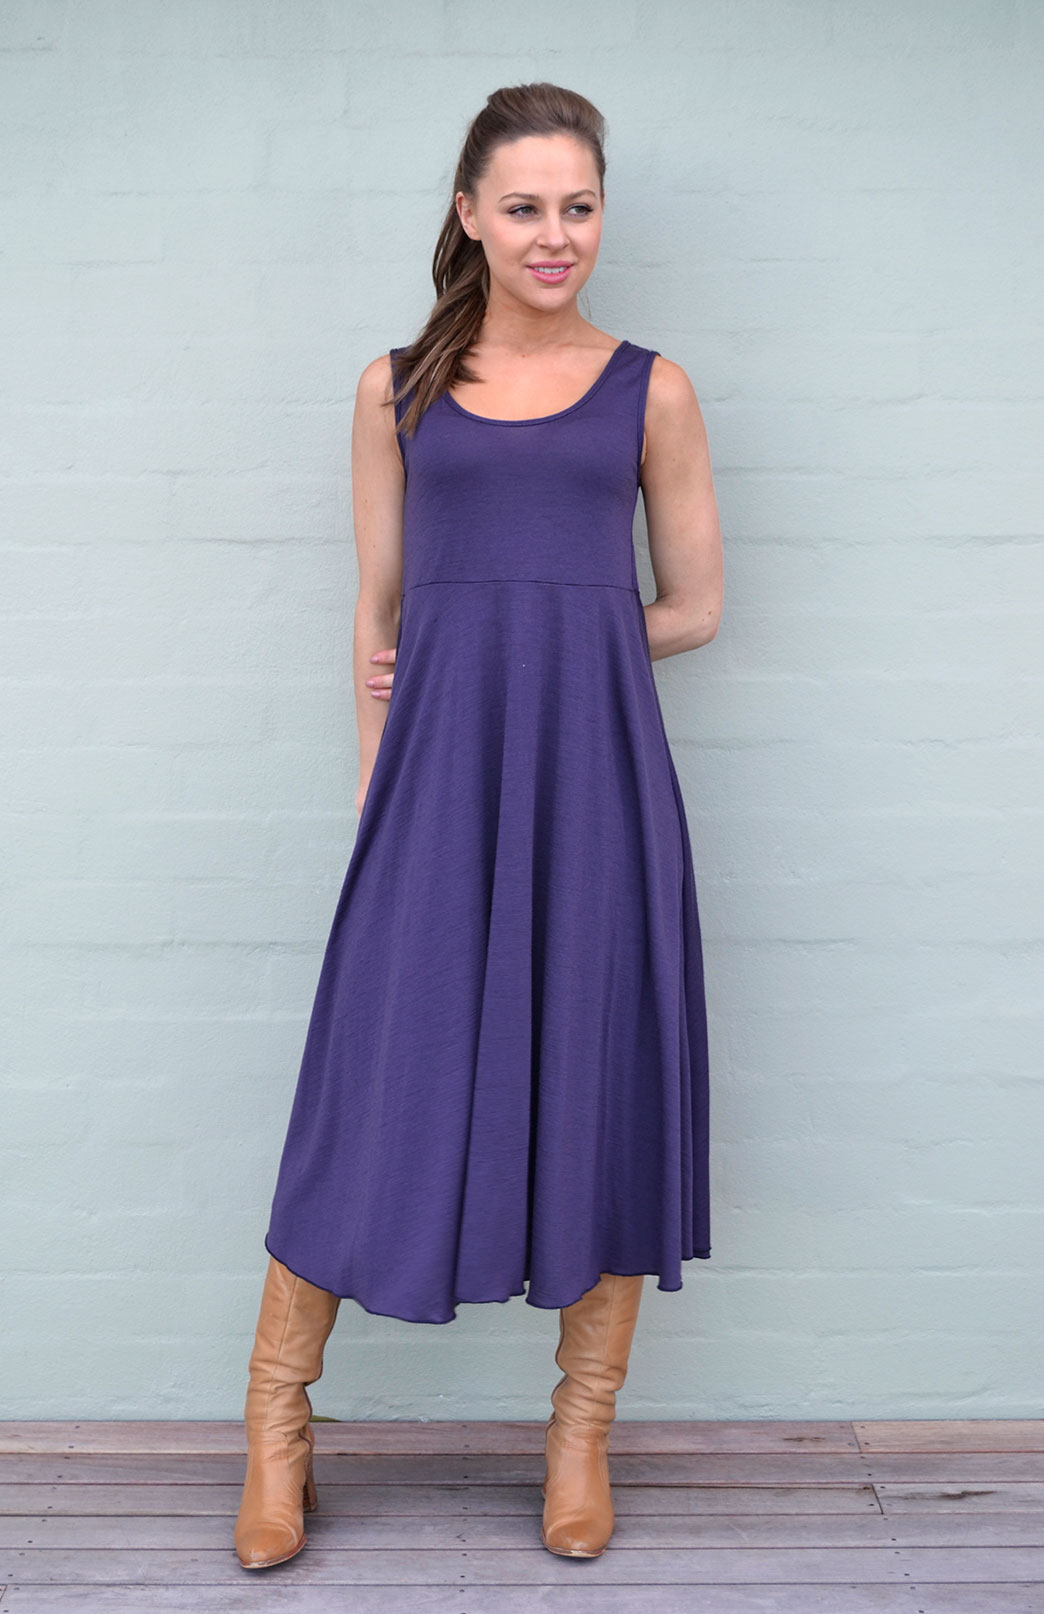 Fan Dress - Women's Grape Merino Wool Sleeveless Spring Dress - Smitten Merino Tasmania Australia